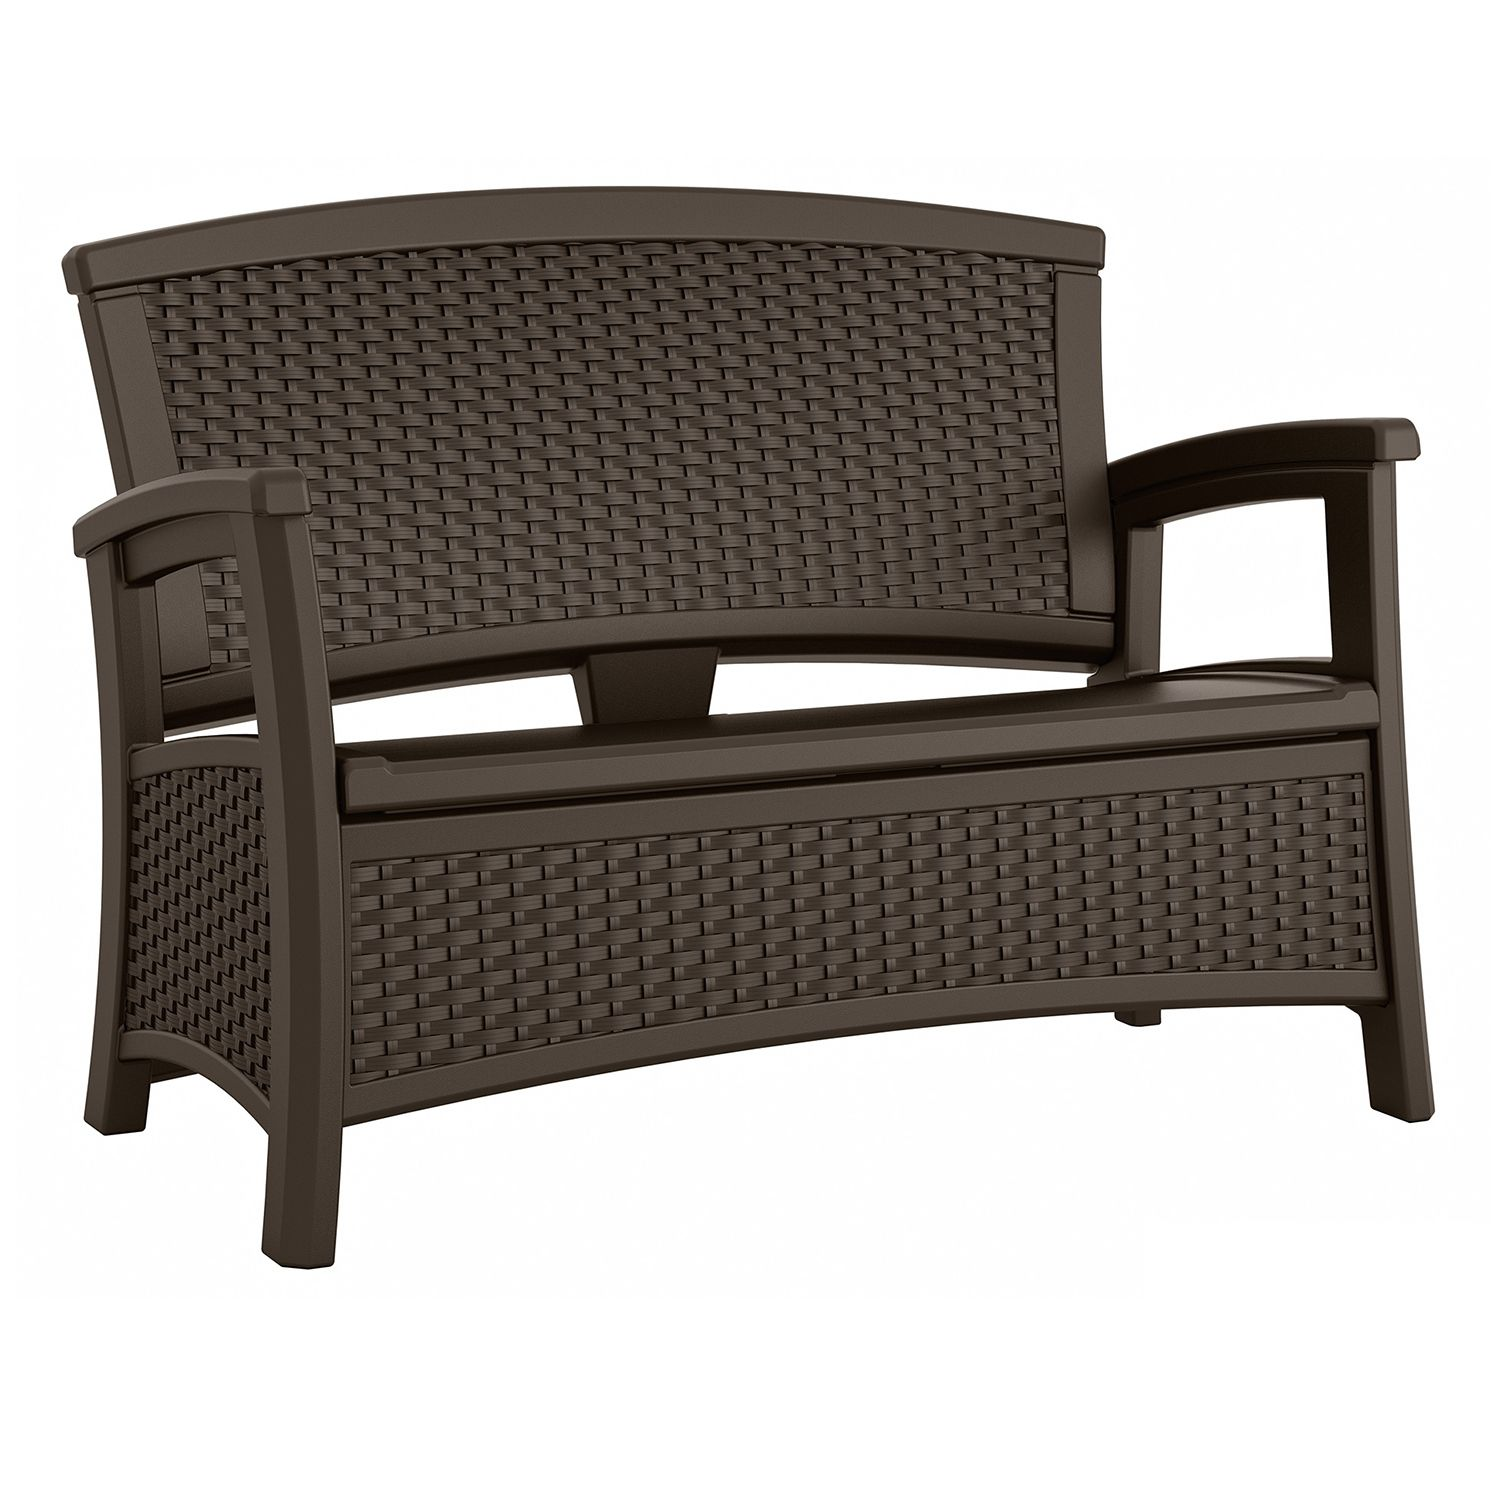 High Quality Suncast Elements Outdoor Storage Loveseat